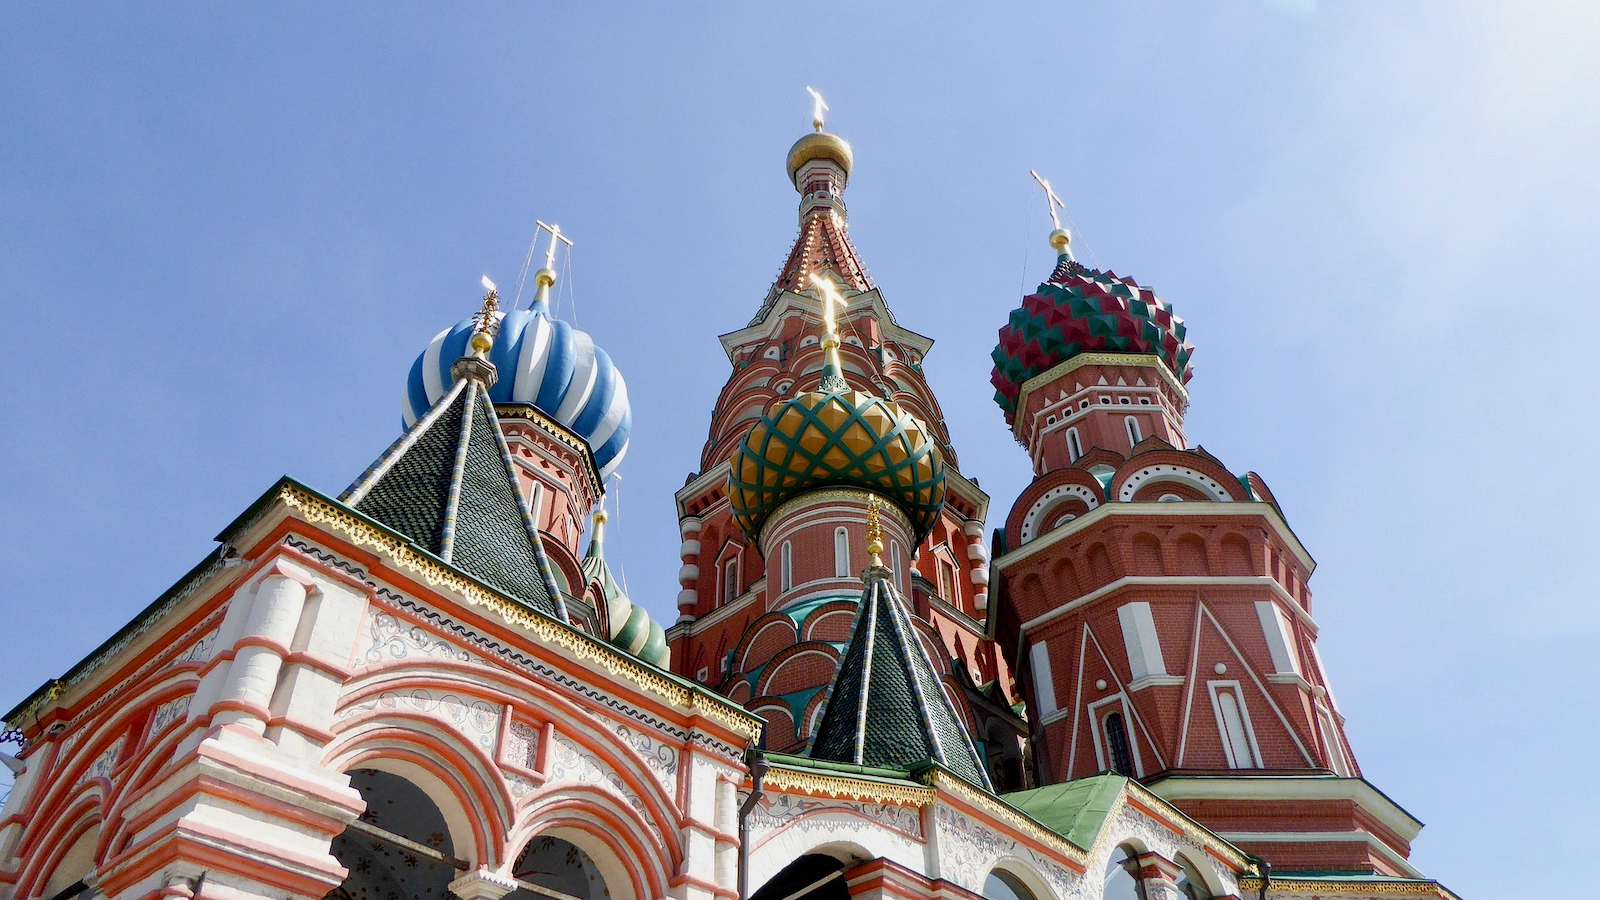 Exterior view of St. Basil's Cathedral in Moscow